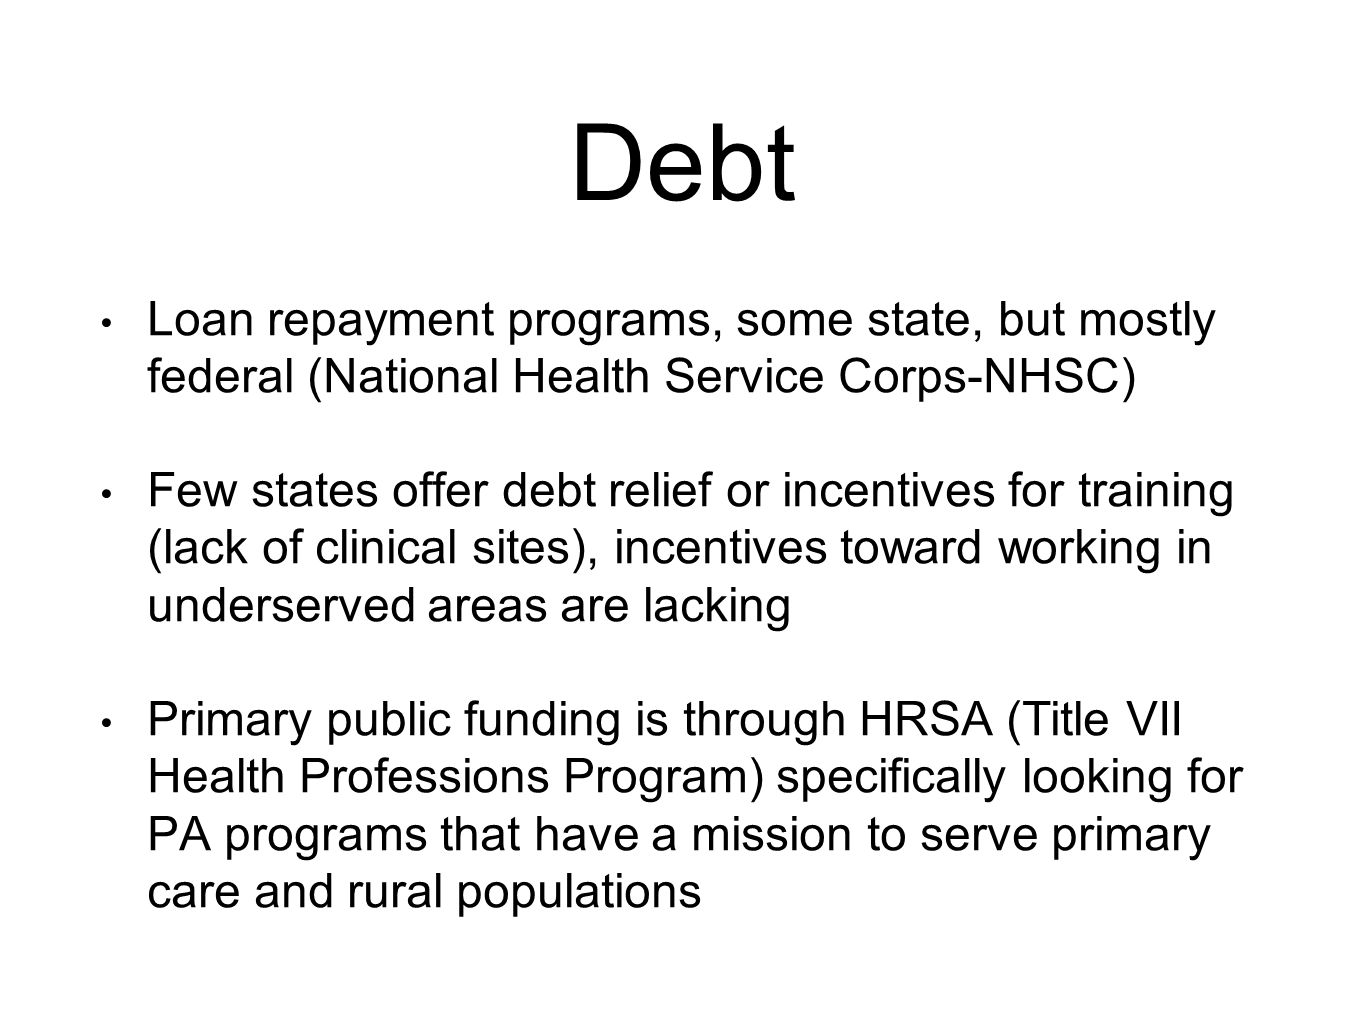 Debt Loan repayment programs, some state, but mostly federal (National Health Service Corps-NHSC) Few states offer debt relief or incentives for training (lack of clinical sites), incentives toward working in underserved areas are lacking Primary public funding is through HRSA (Title VII Health Professions Program) specifically looking for PA programs that have a mission to serve primary care and rural populations